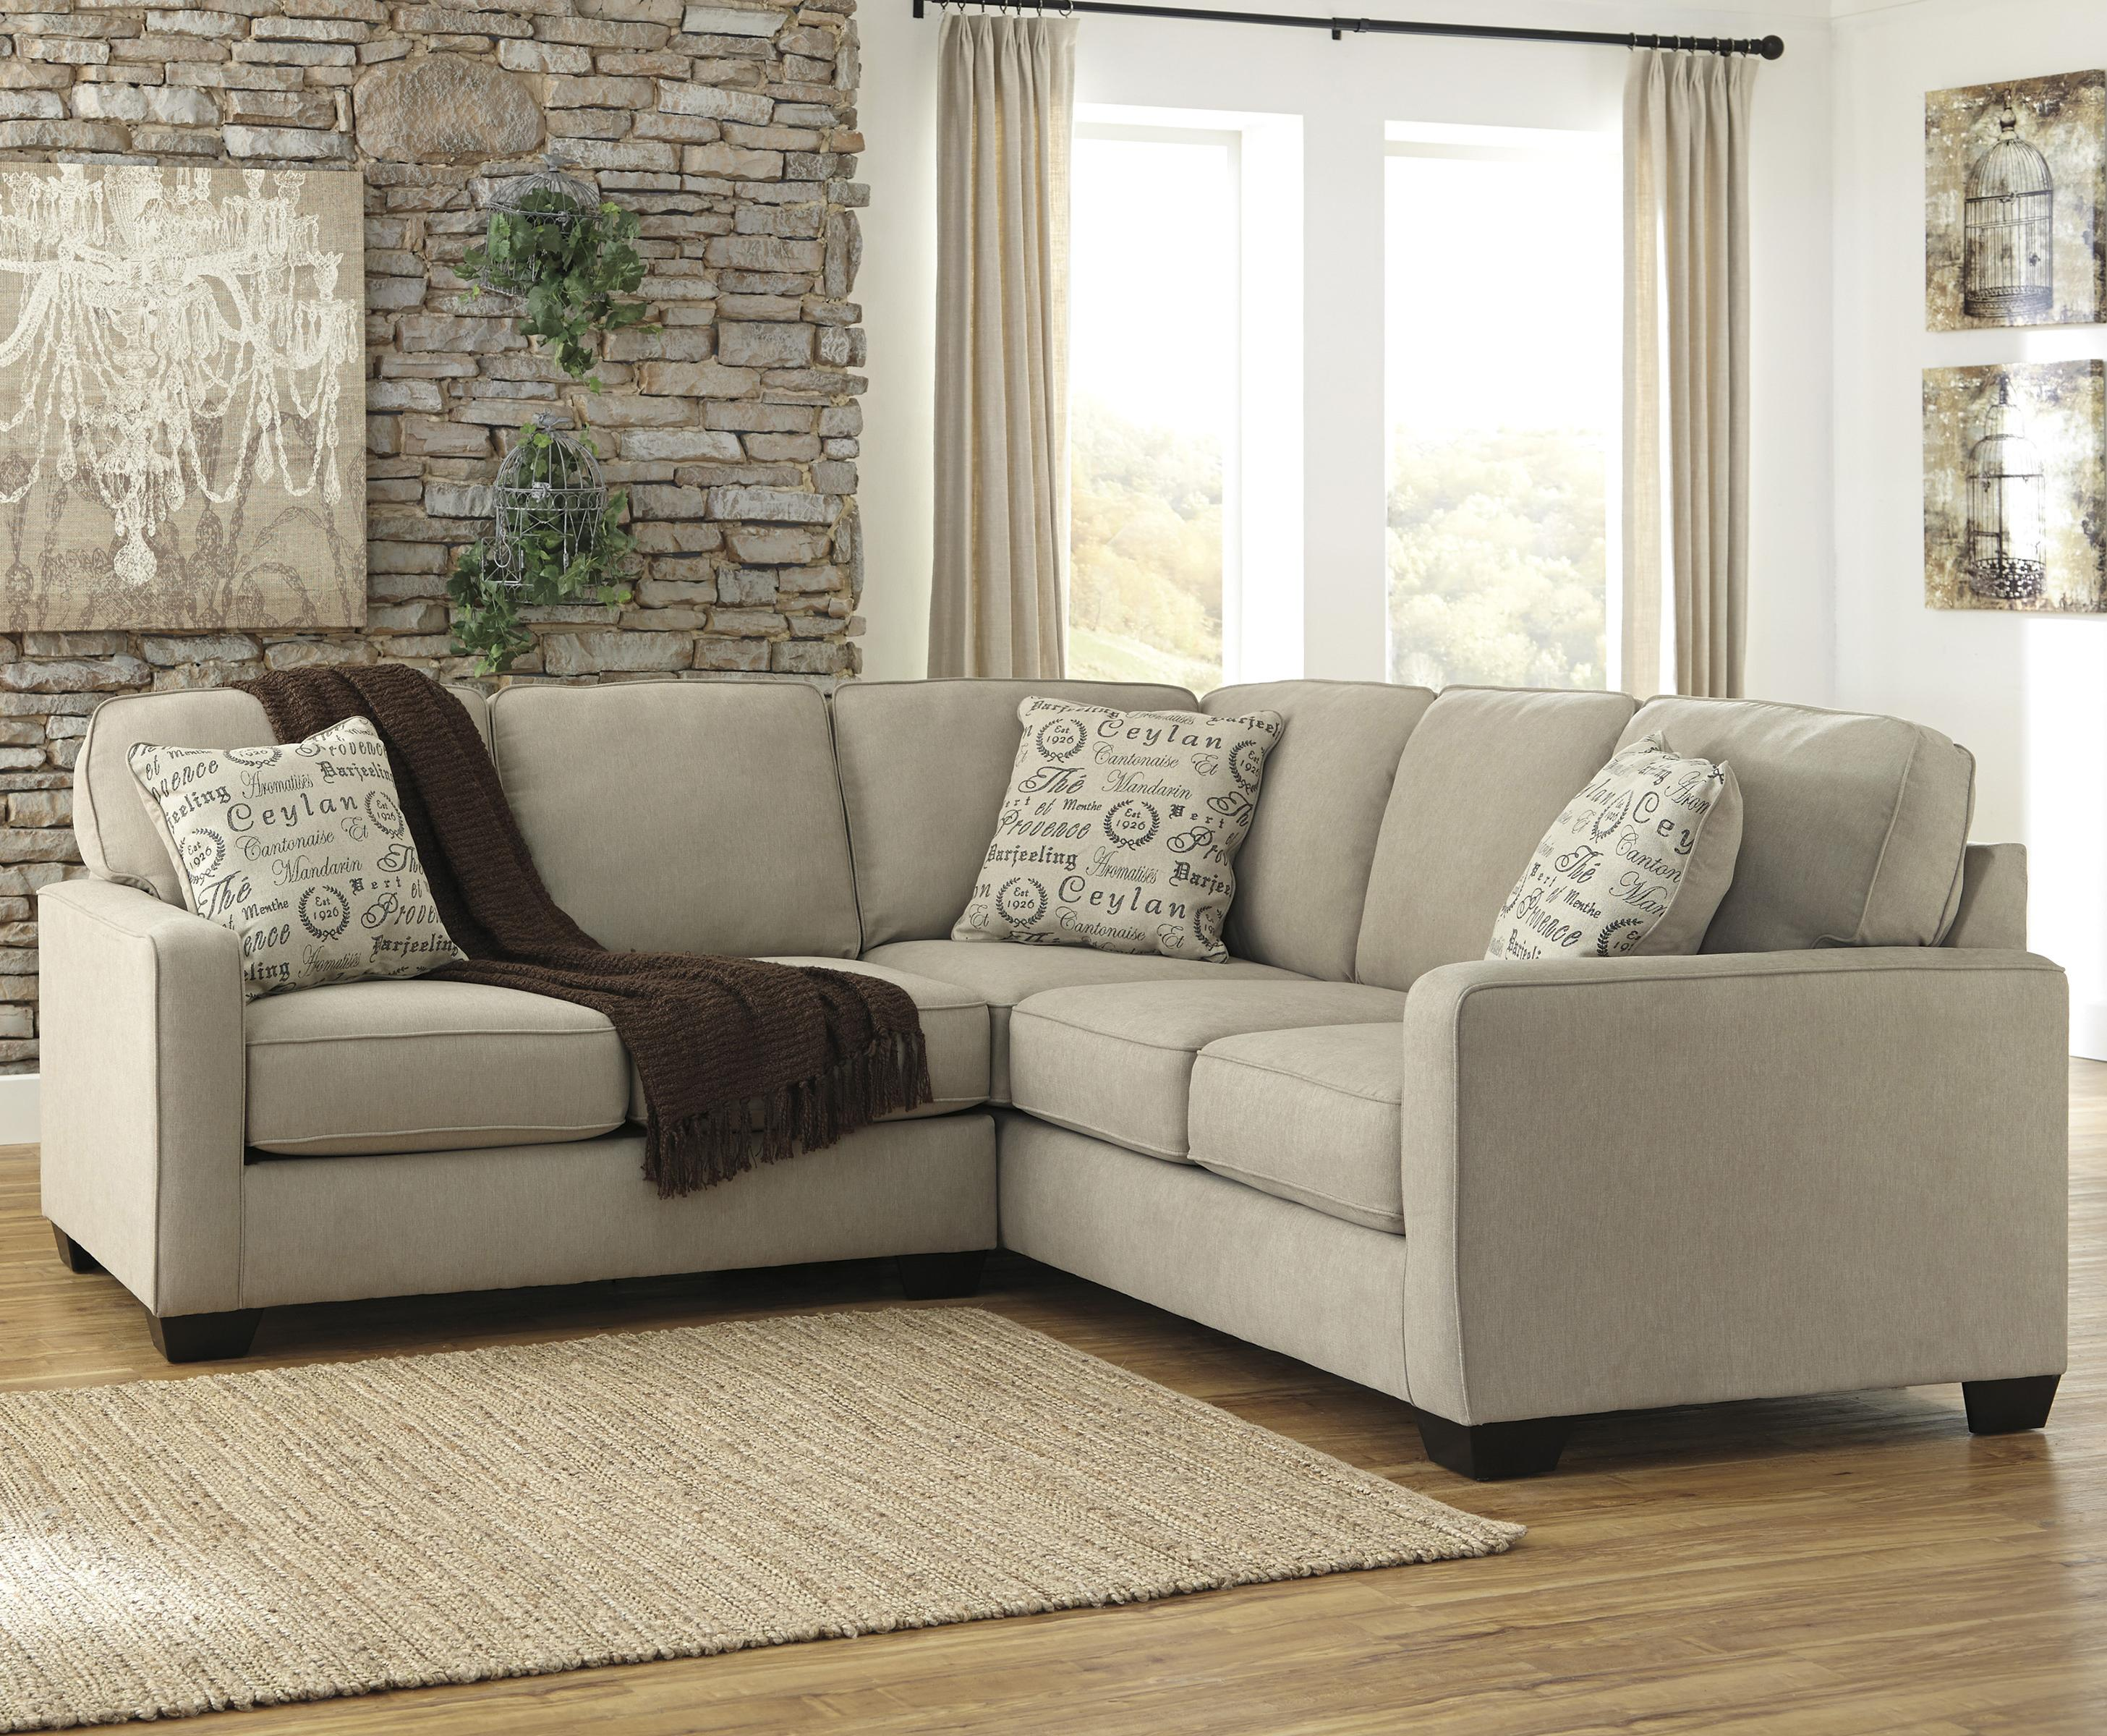 Signature Design by Ashley Alenya - Quartz 2-Piece Sectional with Left Loveseat - Item Number: 1660055+67